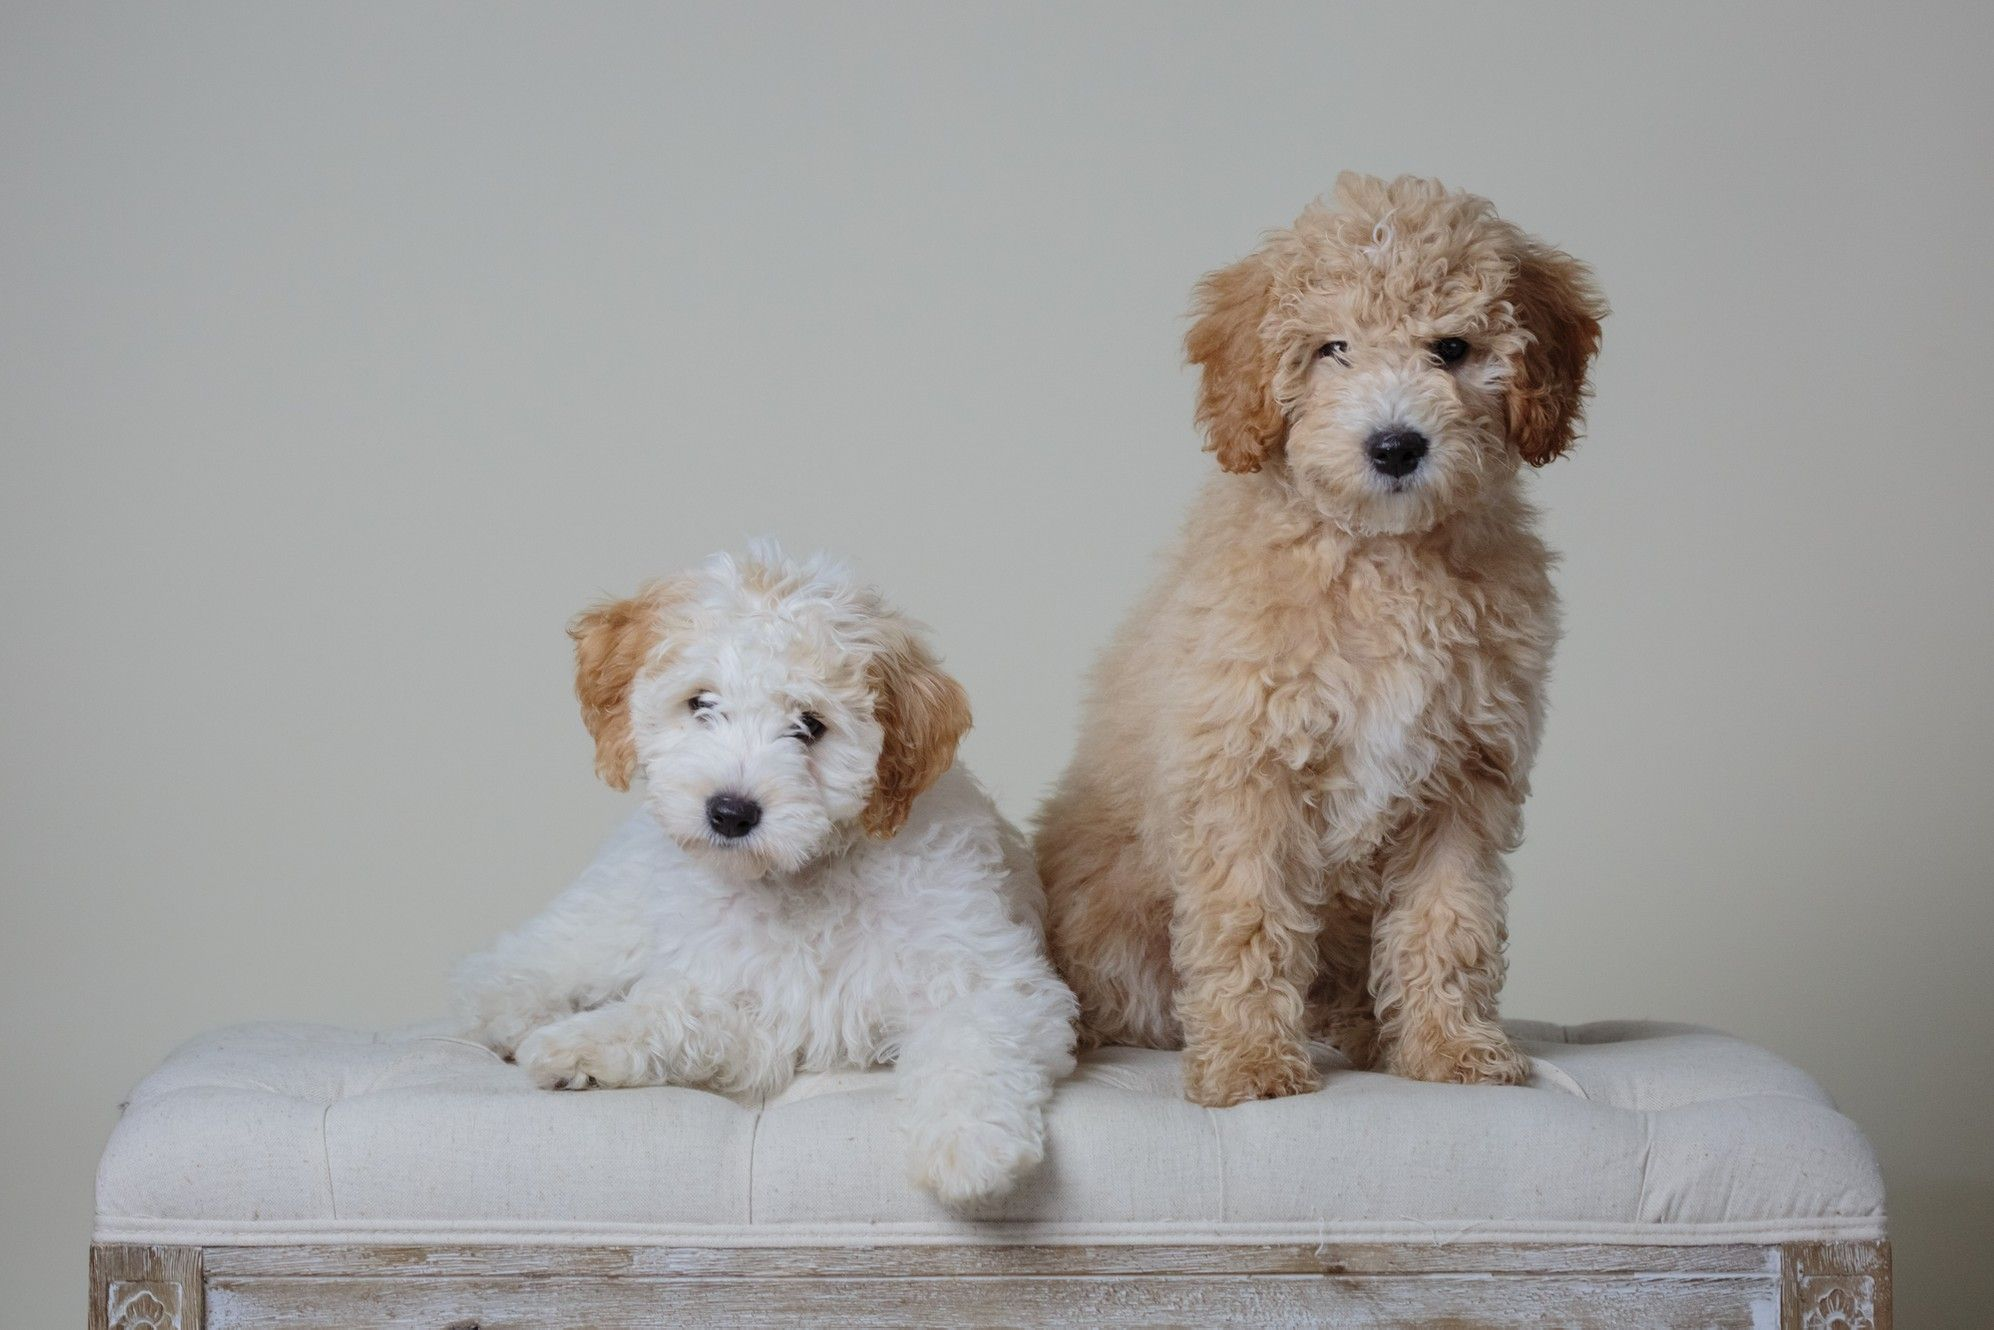 Iowa goldendoodle breeder with goldendoodle puppies for